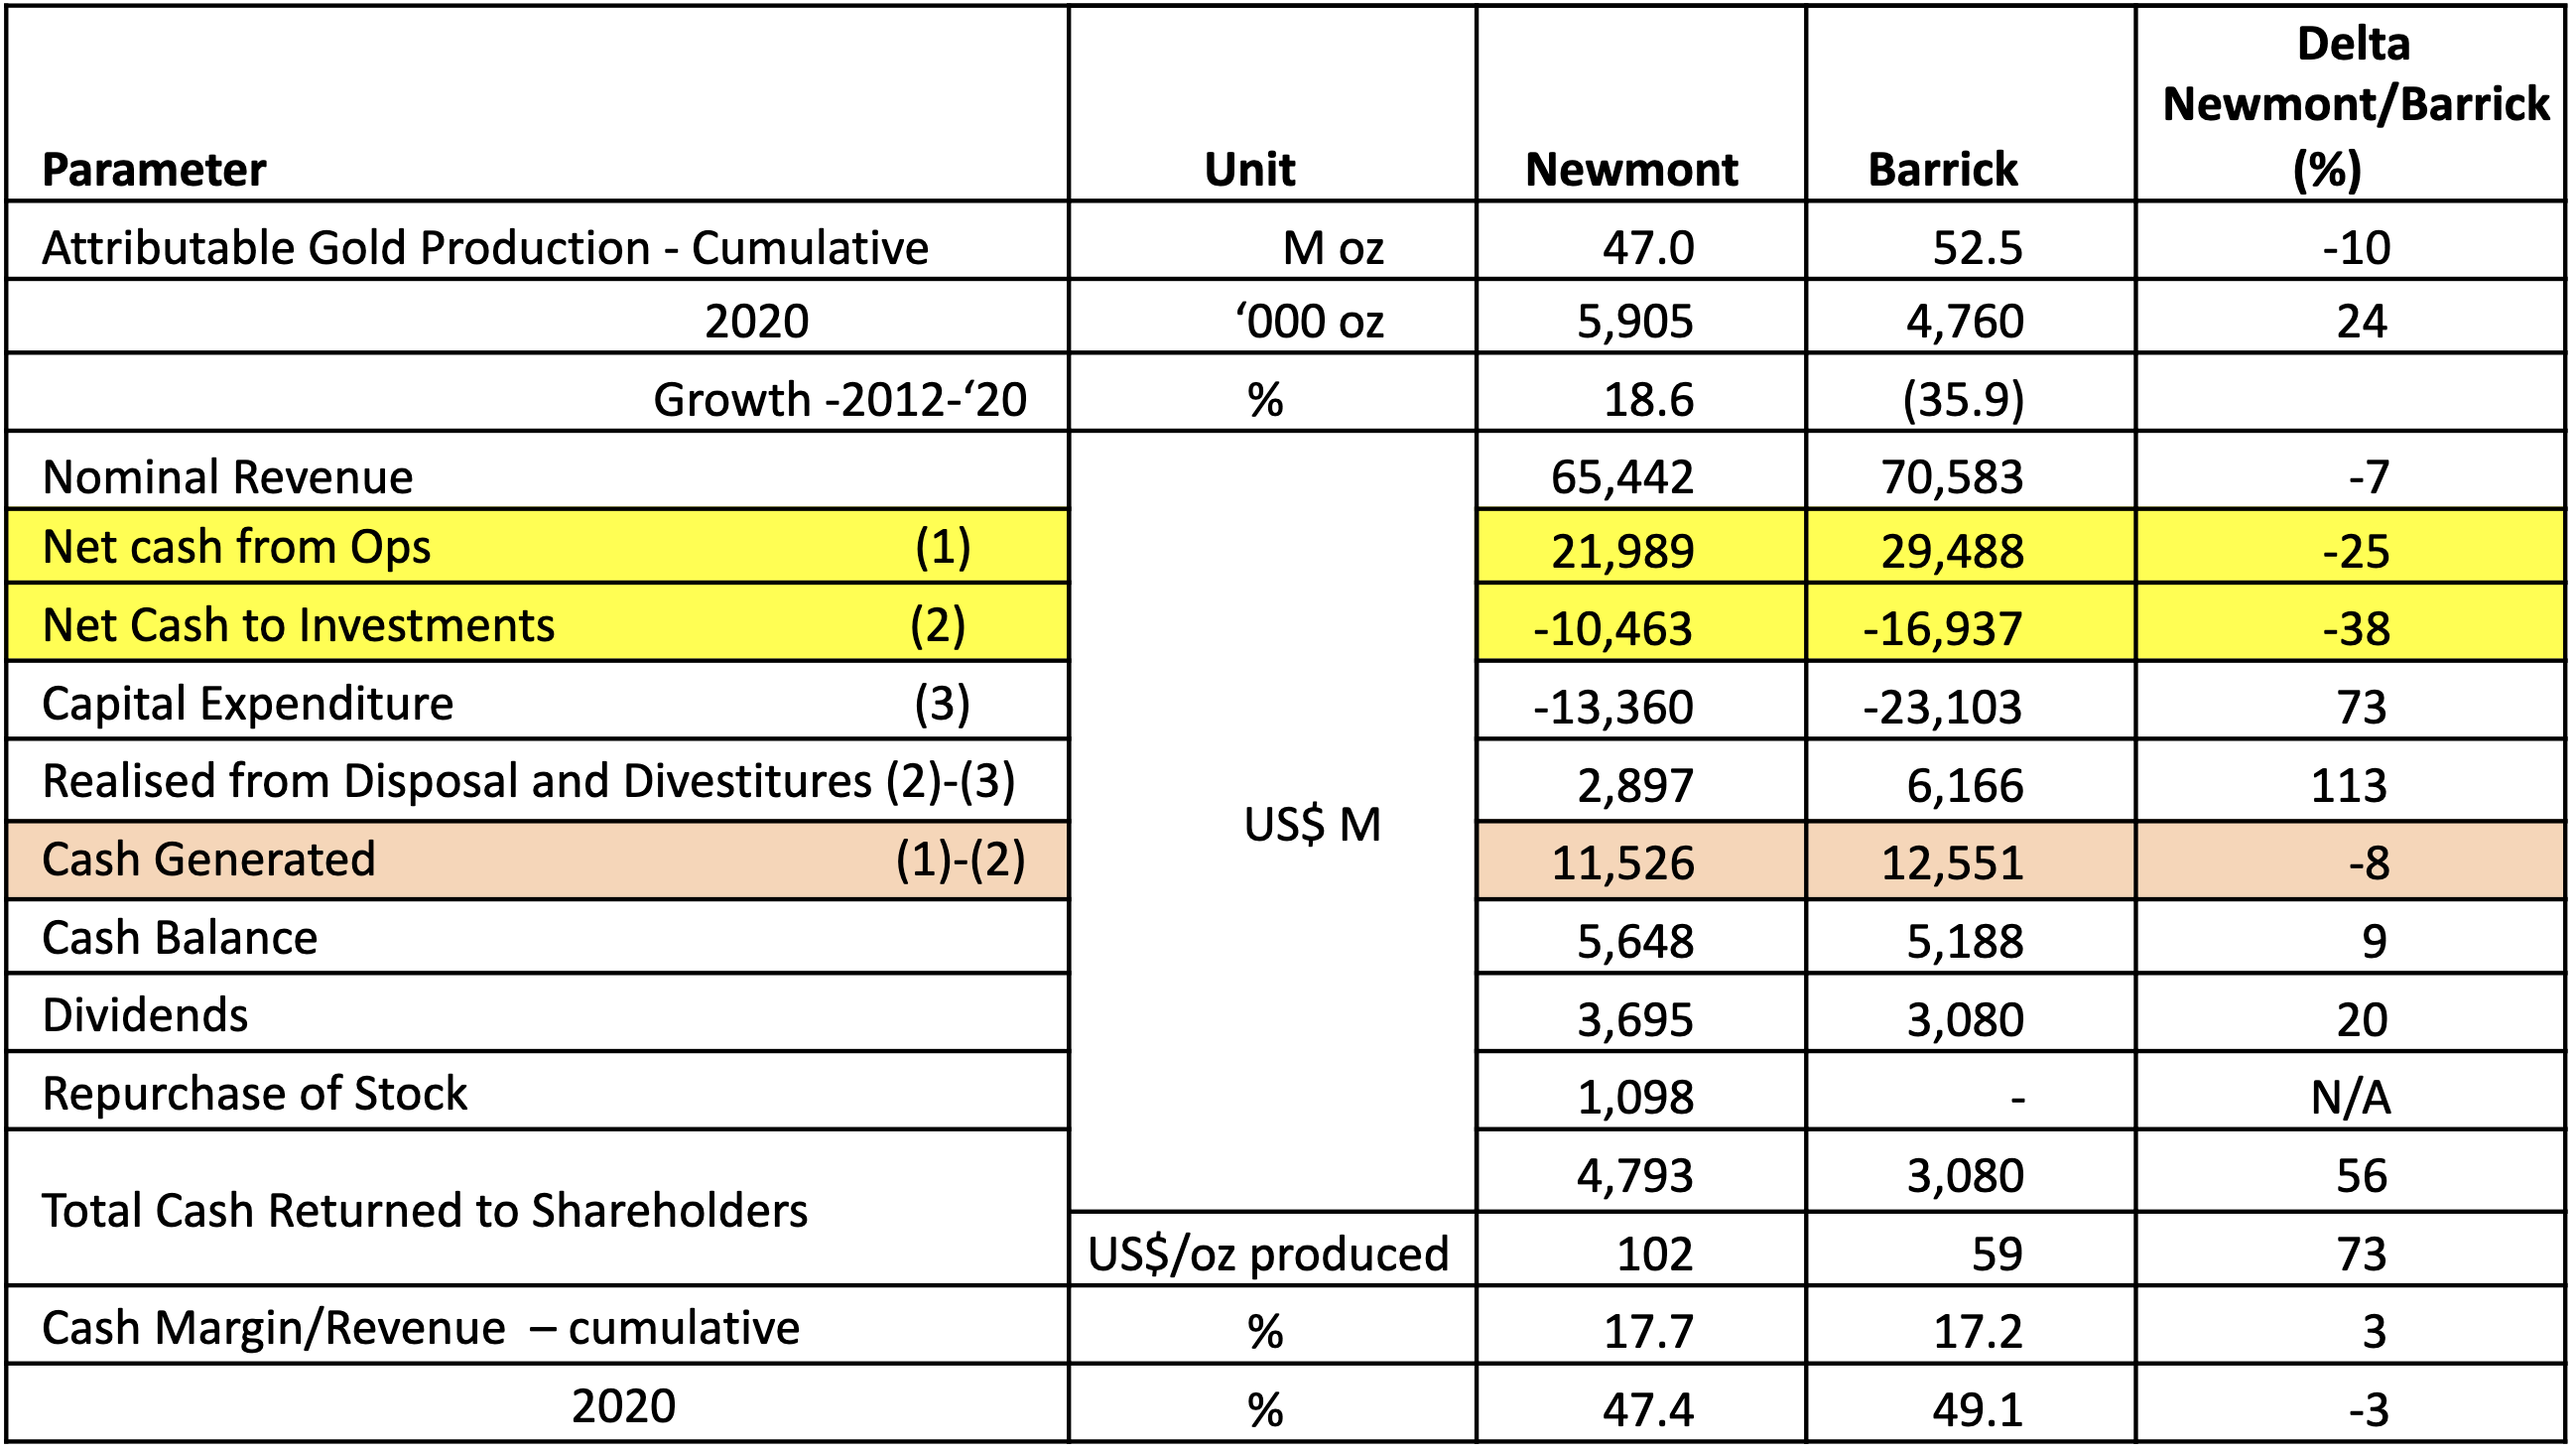 Table 1: Newmont Versus Barrick Gold Operational and Financial Performance – 1 Jan 2012 to 31 Dec 2020